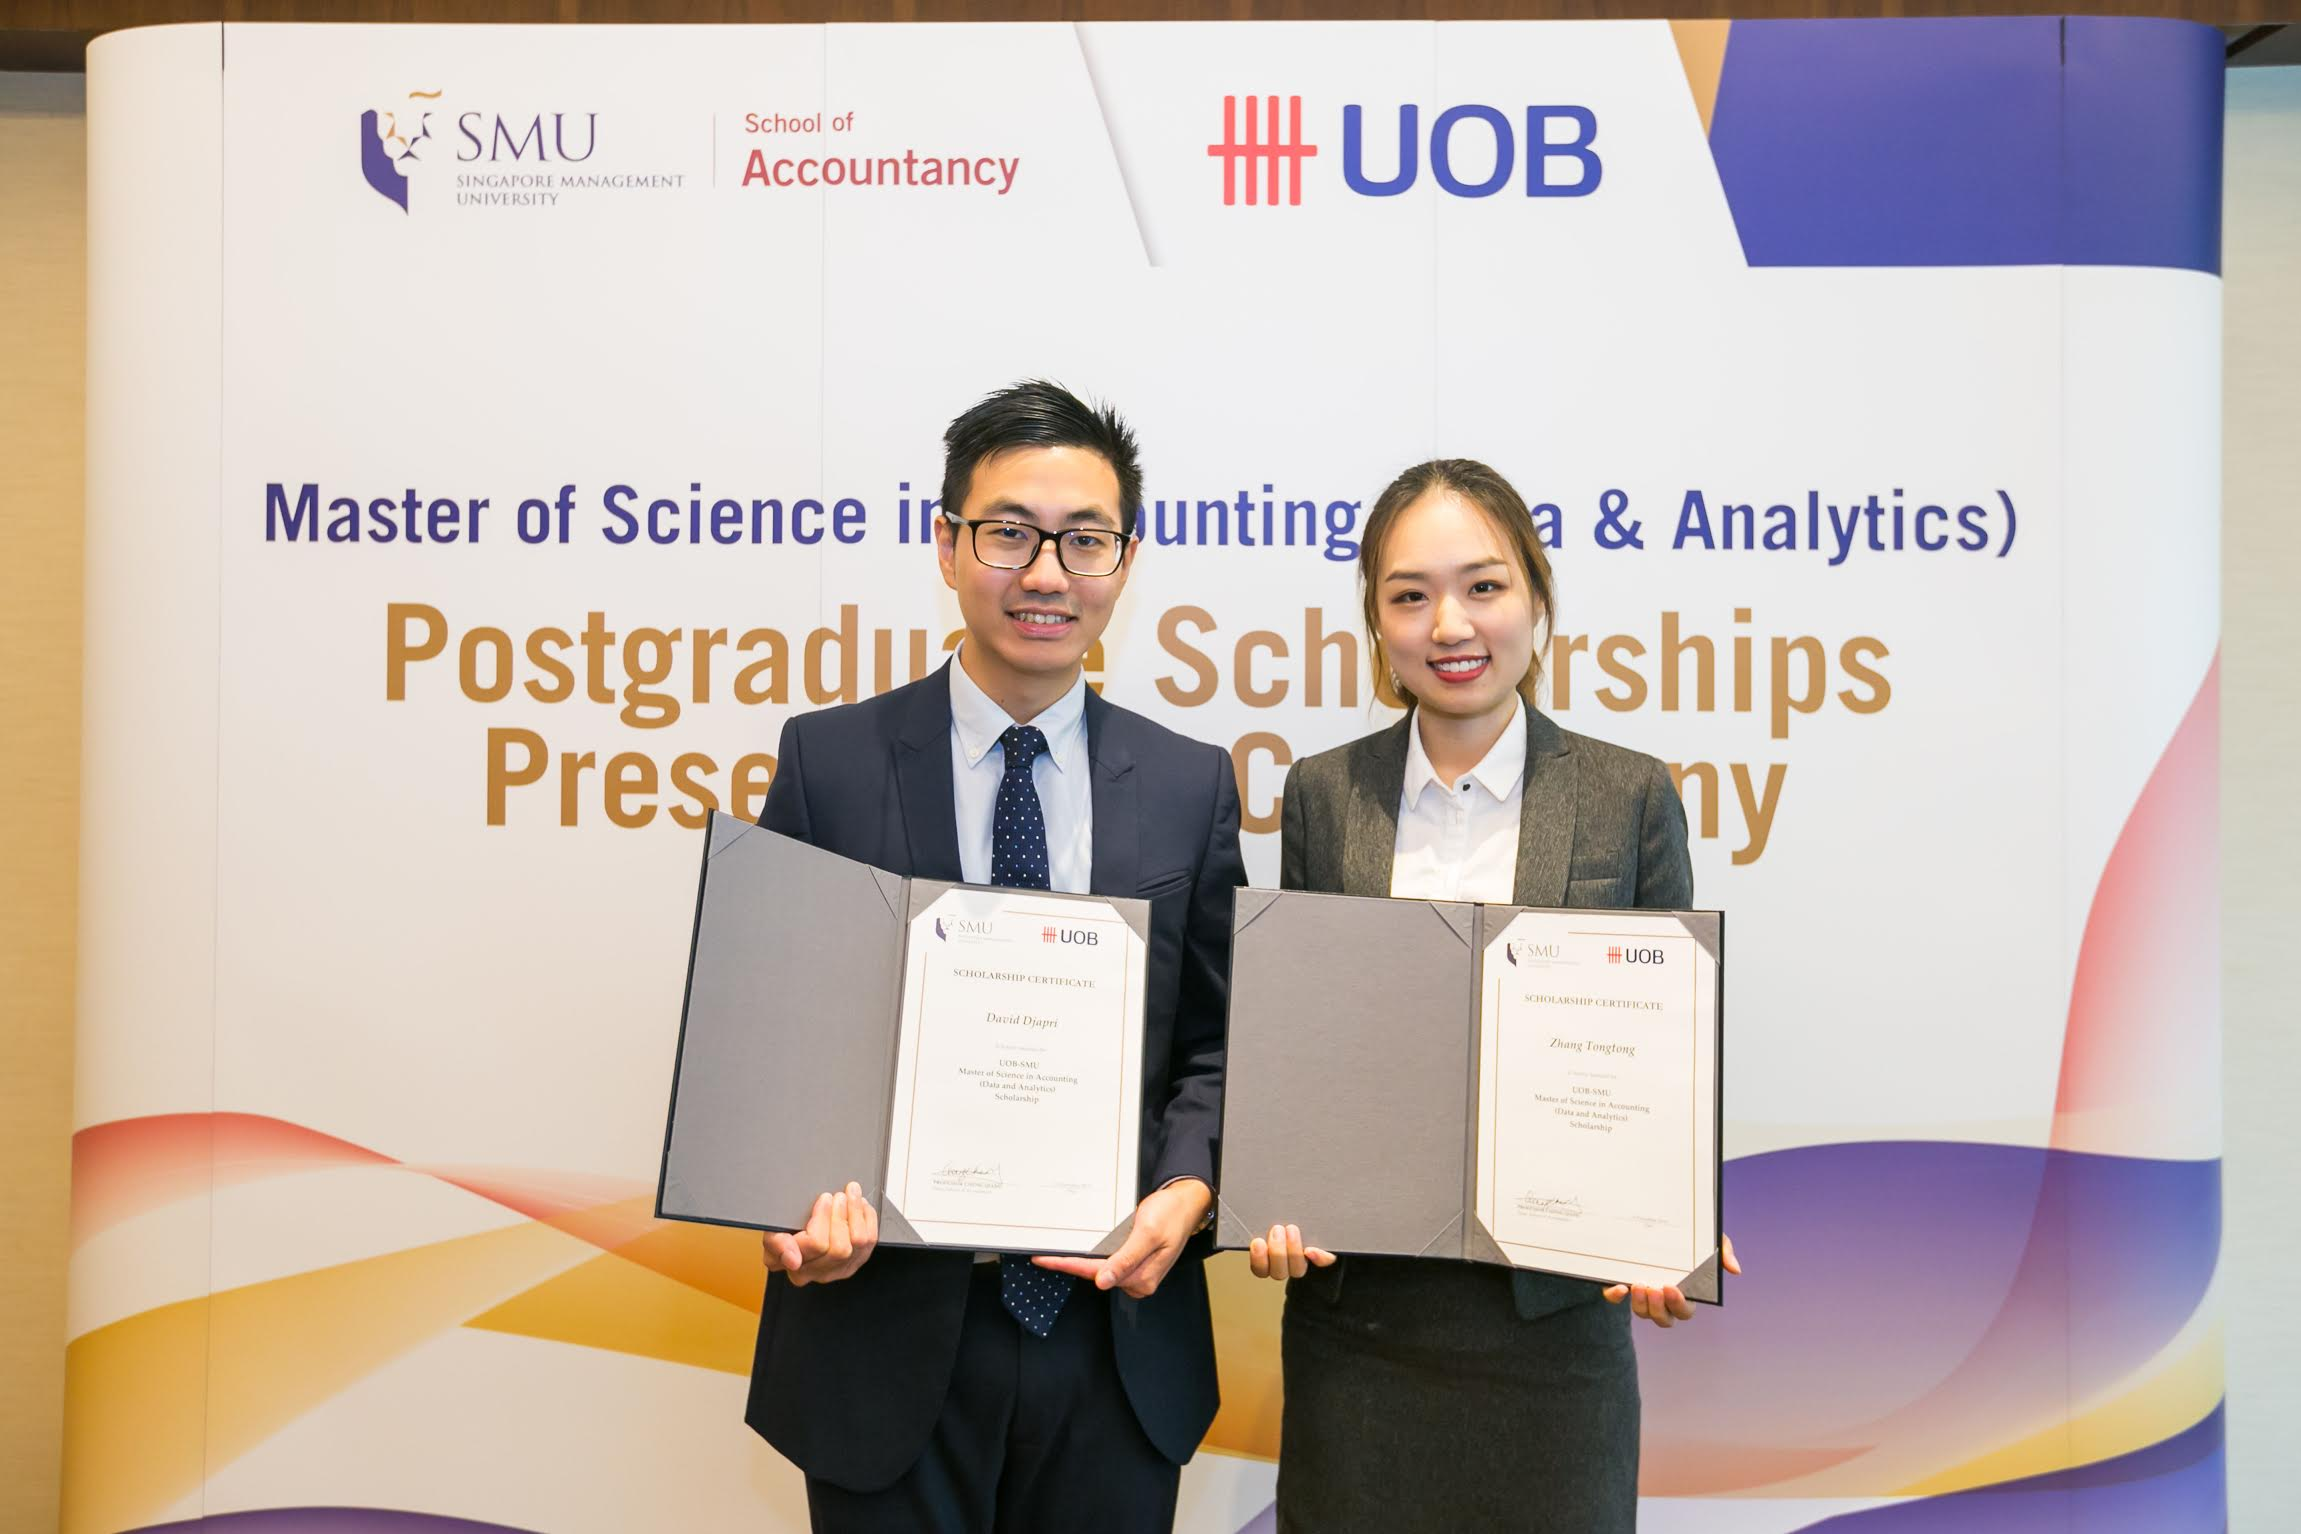 Recipients of the inaugural UOB-SMU MSA Scholarship, David Djapri and Zhang Tongtong. Photo courtesy: SMU